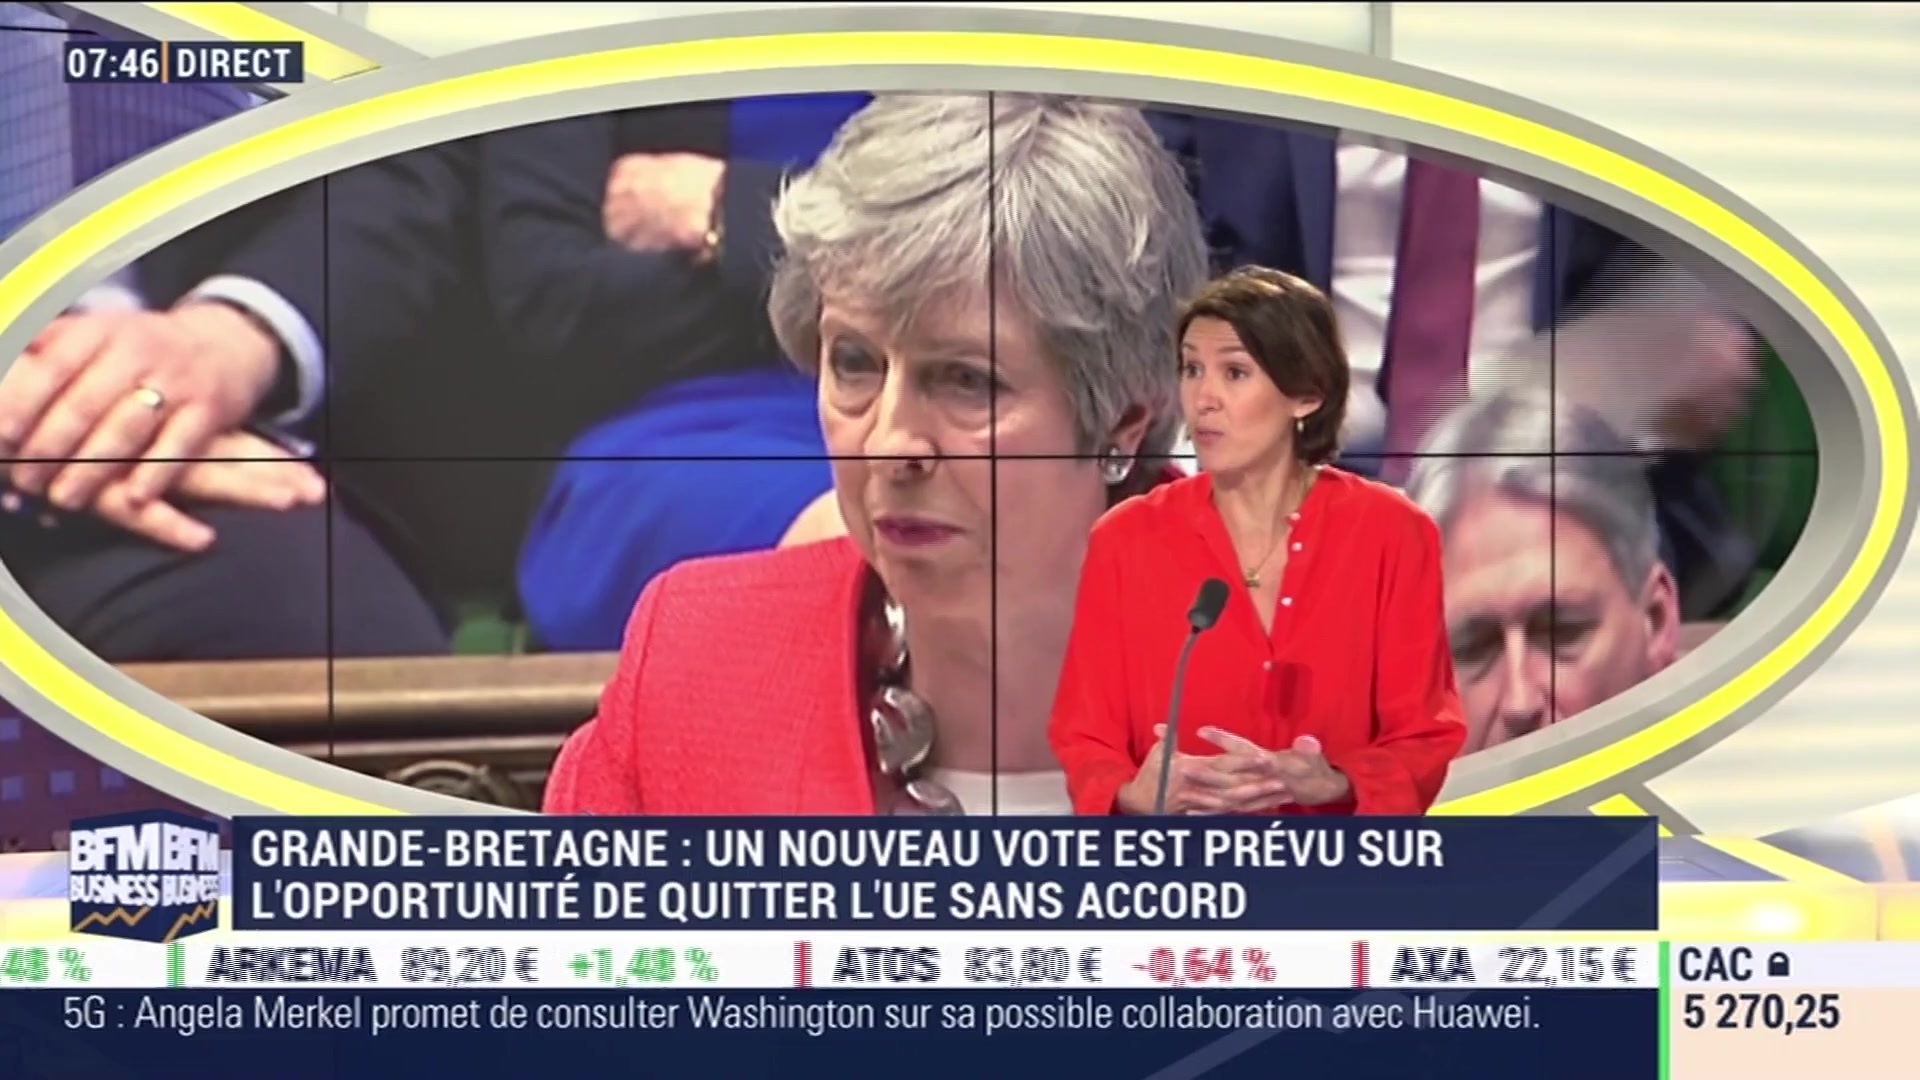 Brexit : rejet d'un nouvel accord, Theresa May en échec